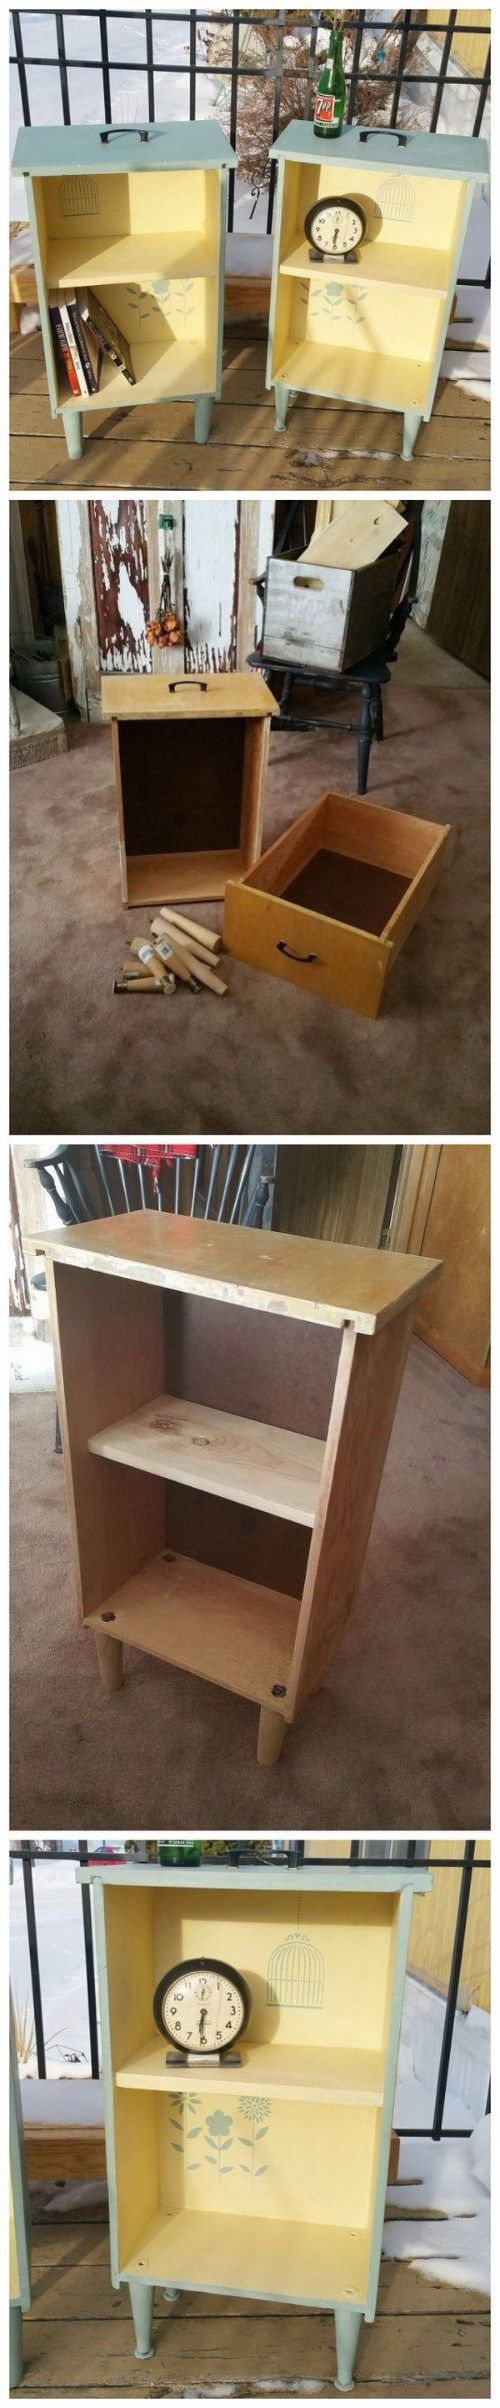 30 Awesome DIY Ideas to Give Life to Your Old Furniture #thriftstoreupcycle